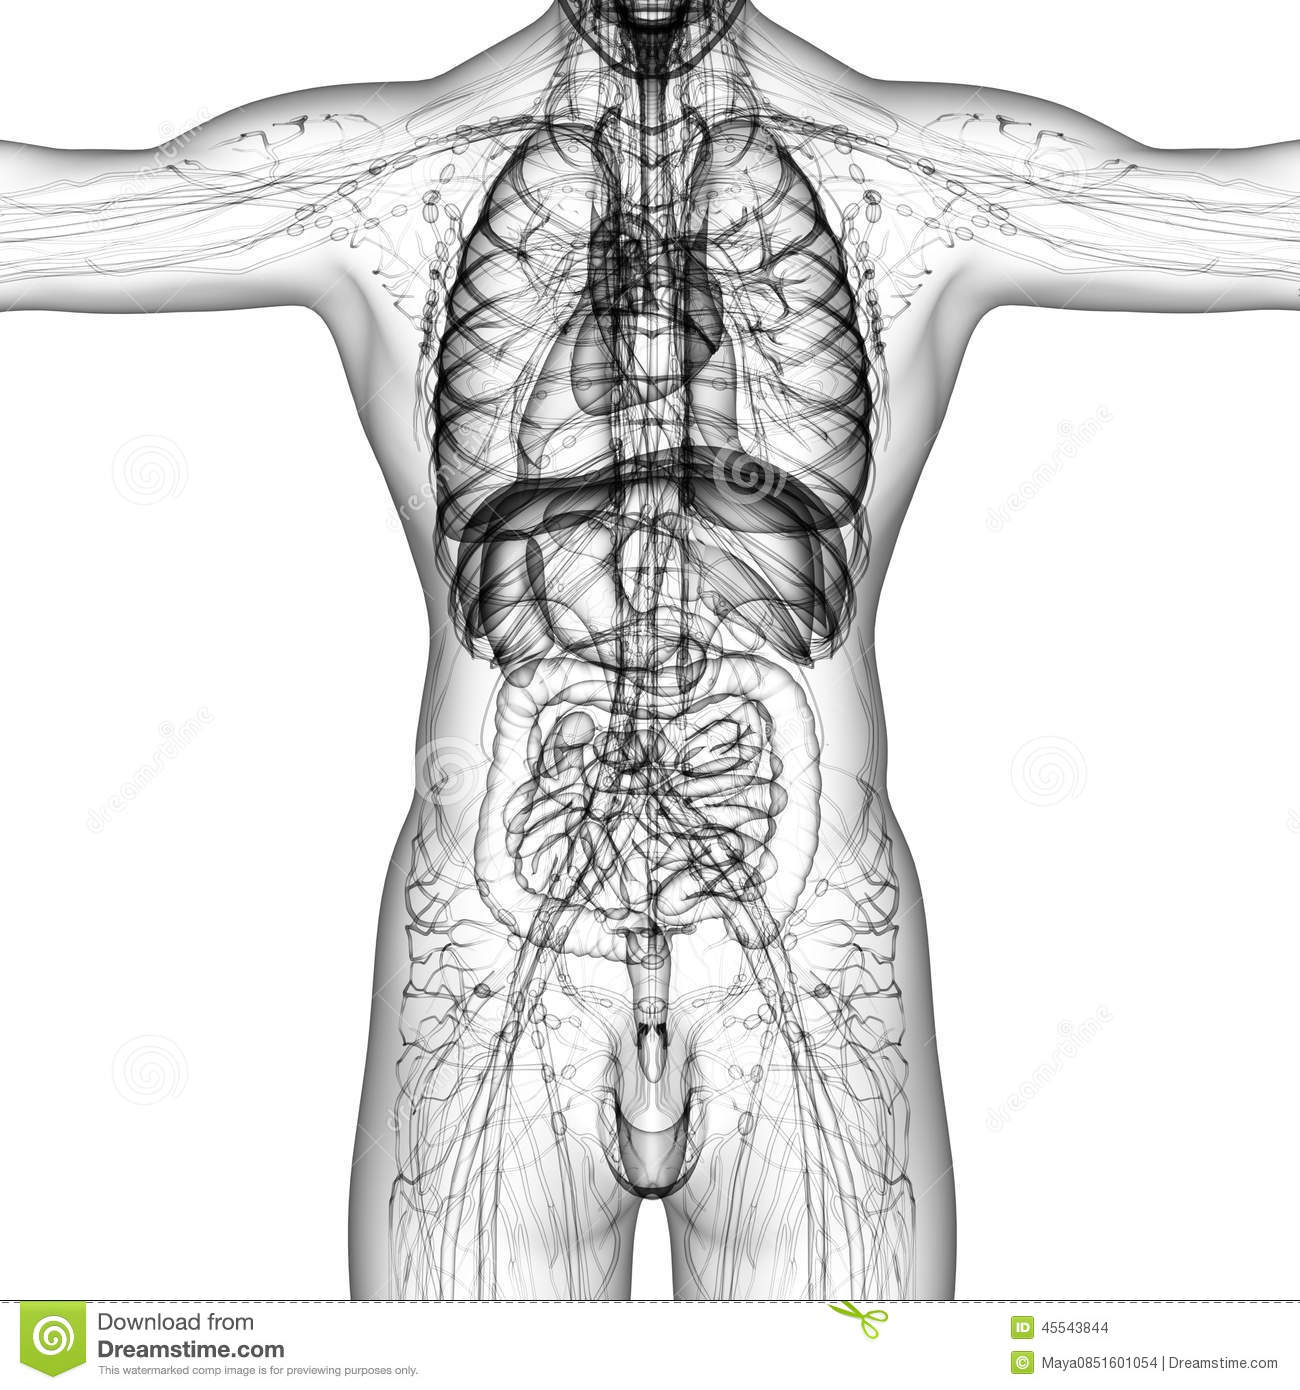 3d Render Medical Illustration Of The Human Anatomy Stock